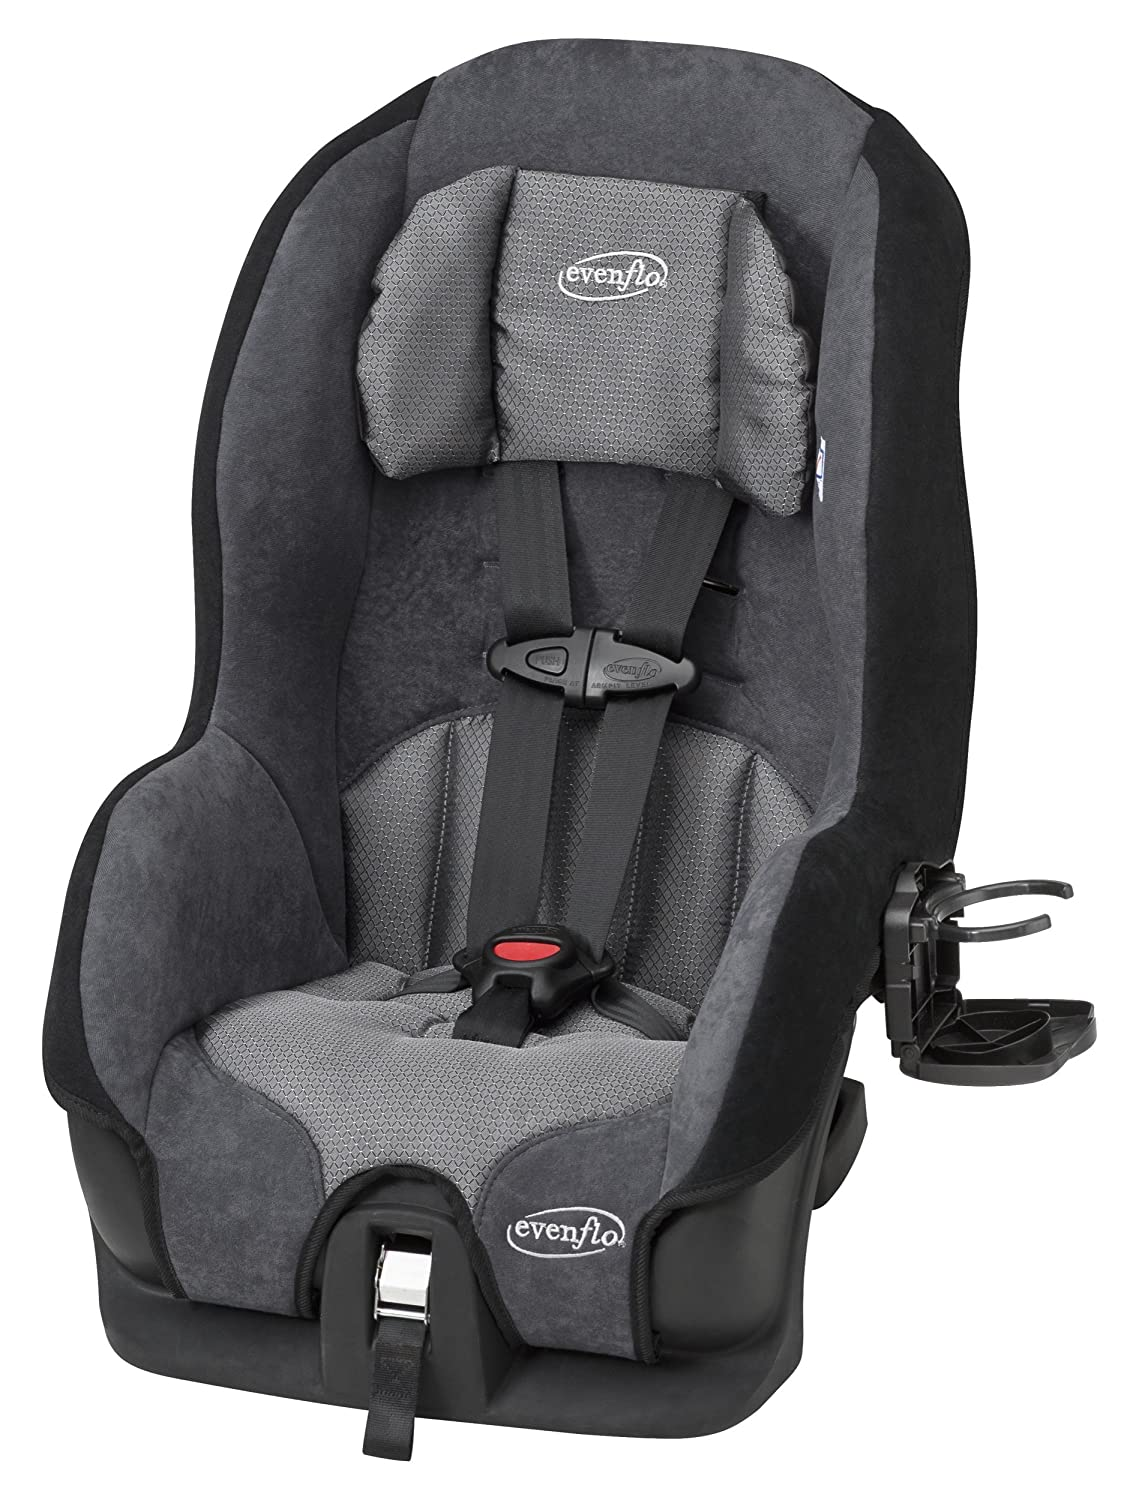 review top 5 and best convertible car seats. Black Bedroom Furniture Sets. Home Design Ideas